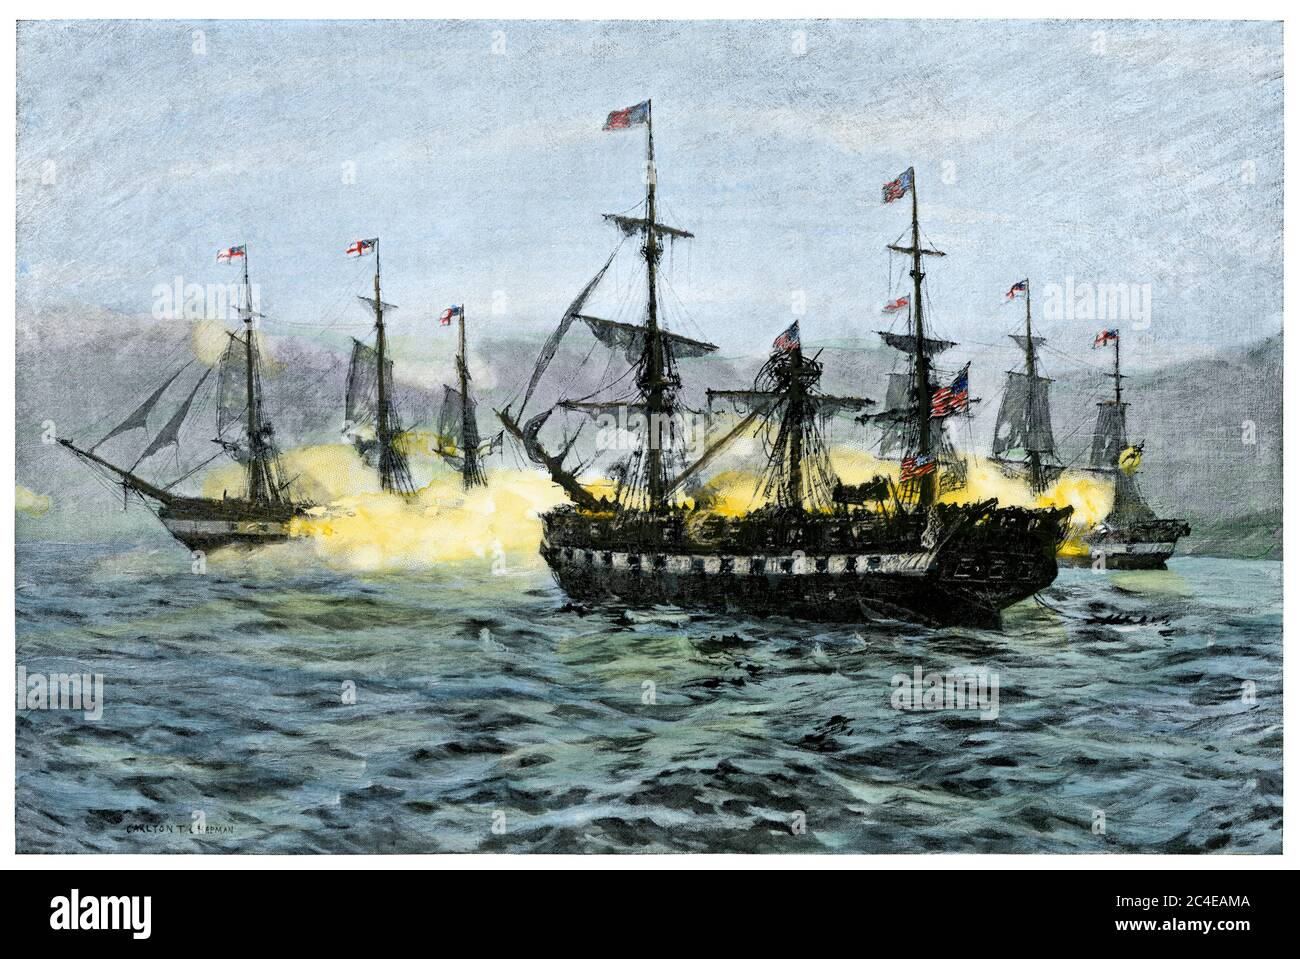 Capture of USS Essex by British warships, Valparaiso, Chile, 1814. Hand-colored halftone of an illustration Stock Photo